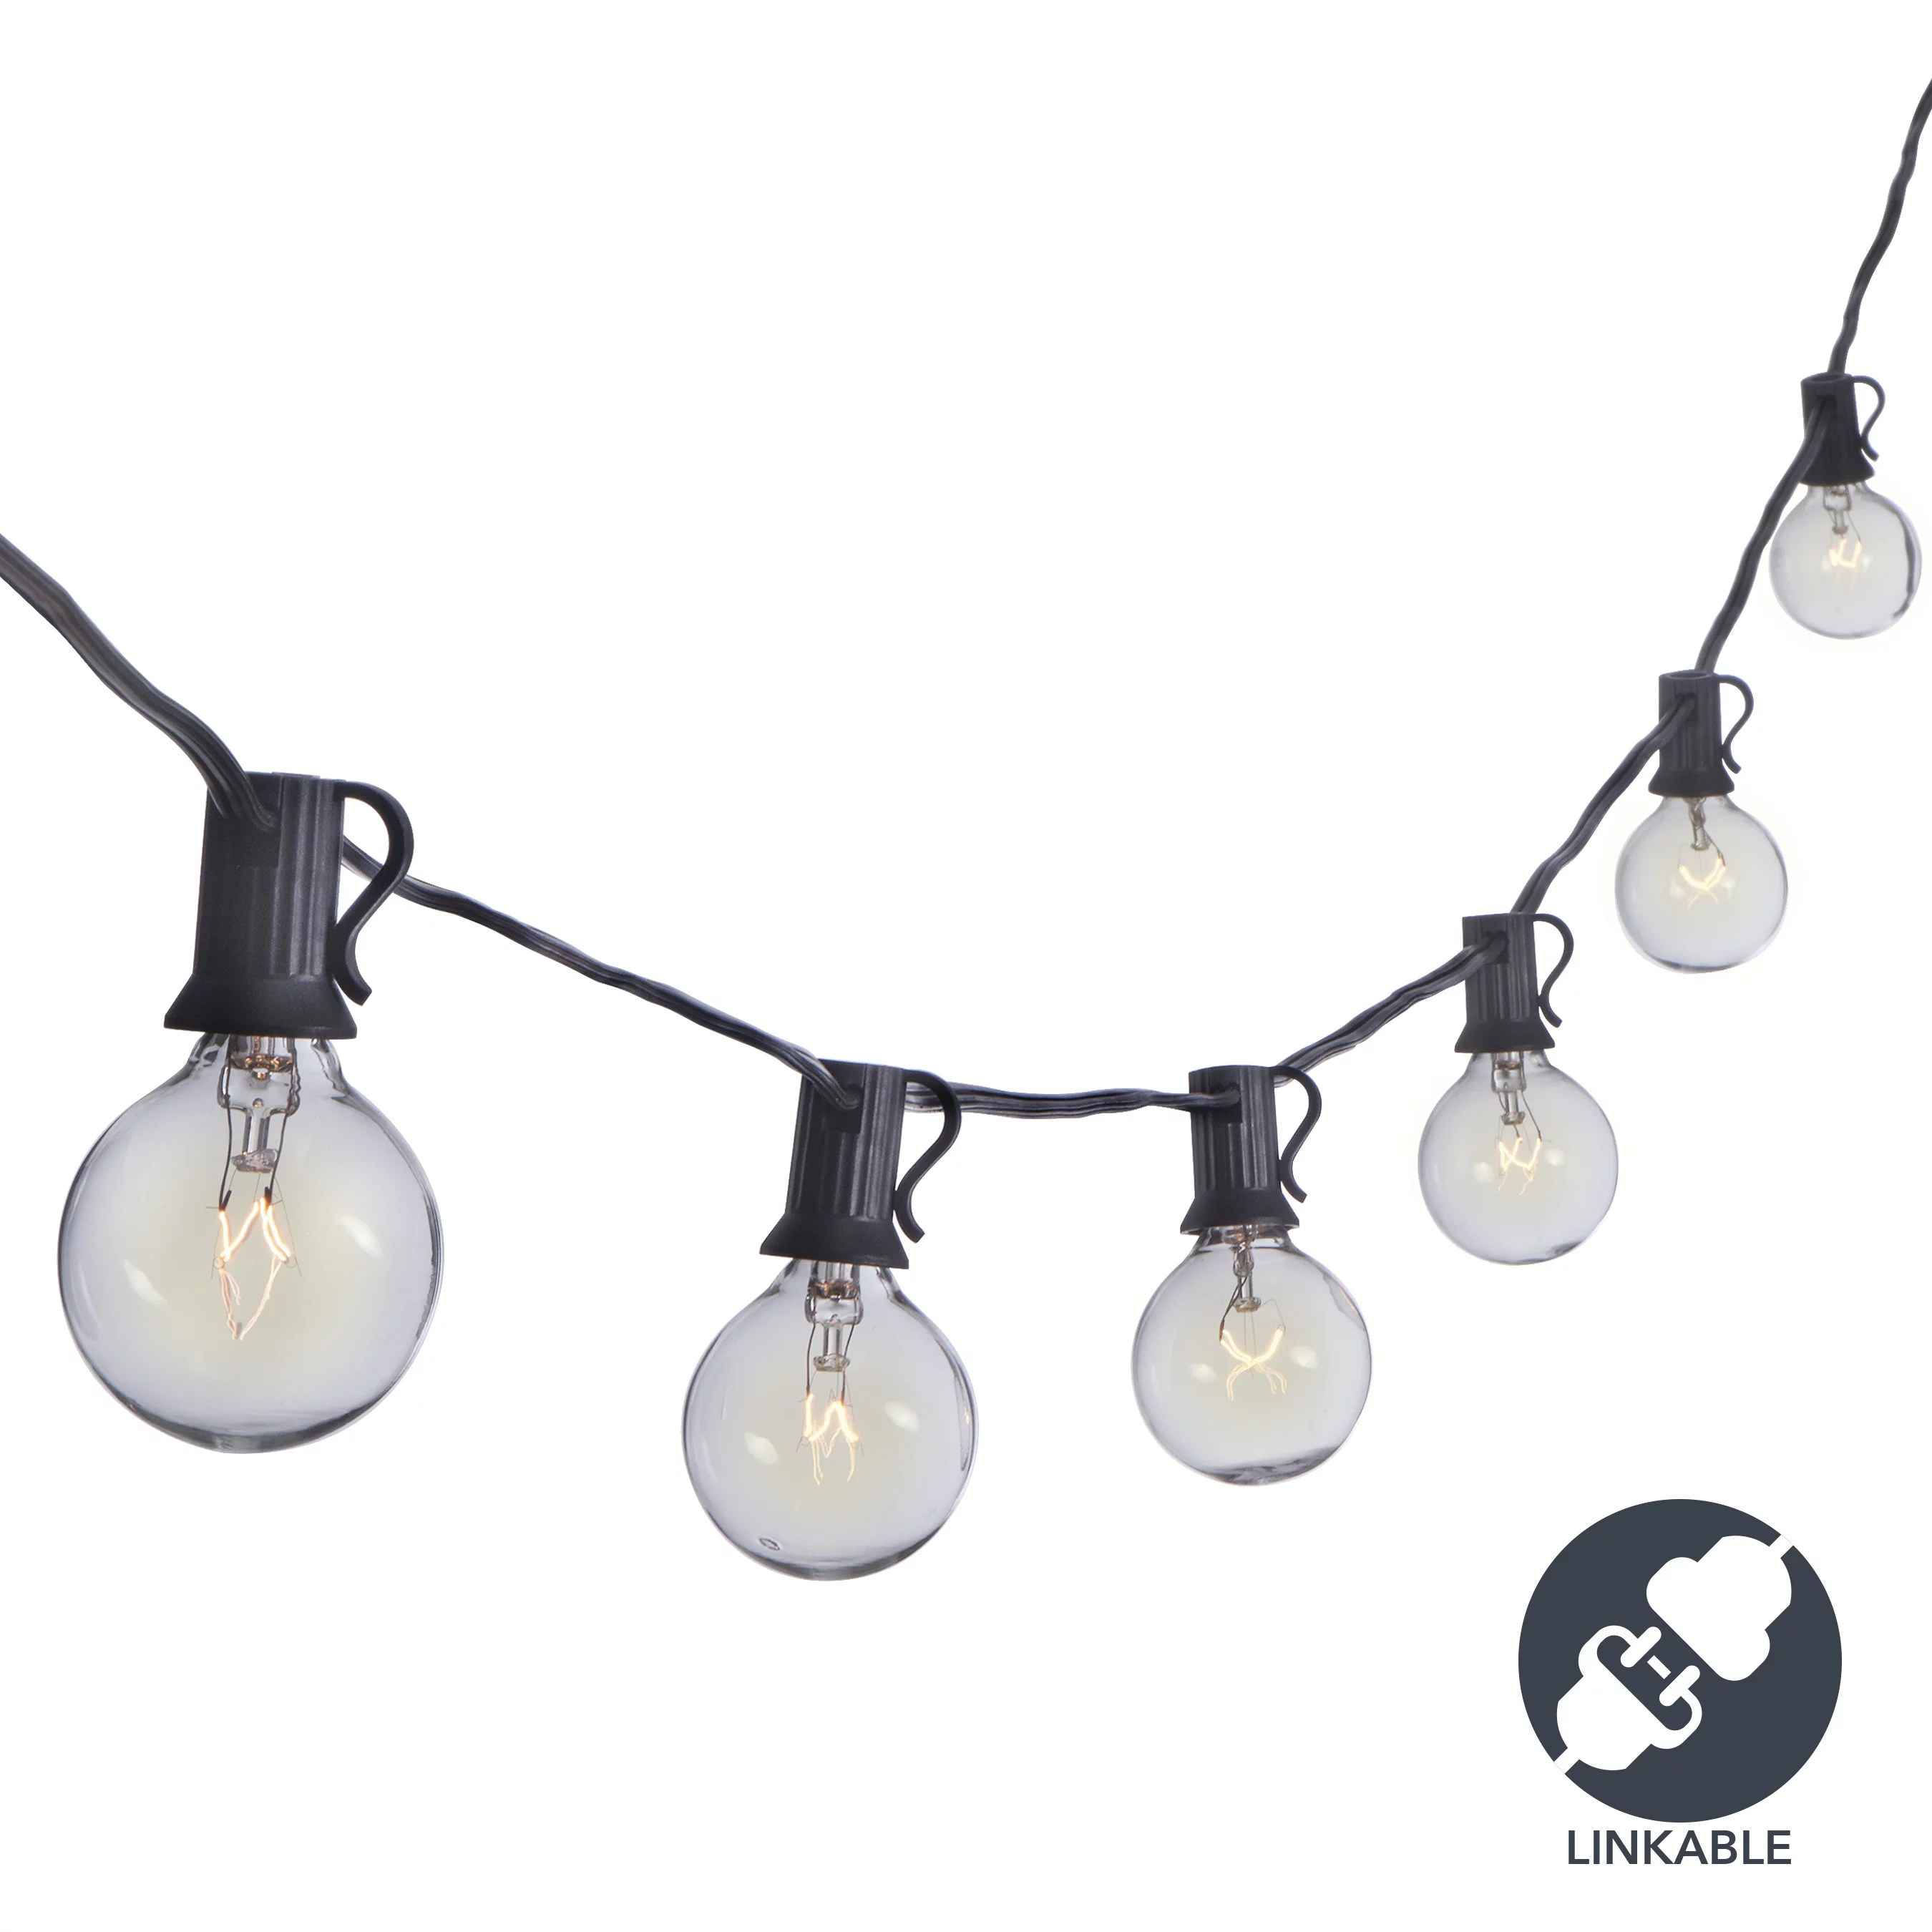 sterno home sterno home 25 ft connectable clear globe outdoor string lights g40 bulbs on black cord for backyard weddings patio porch tents and